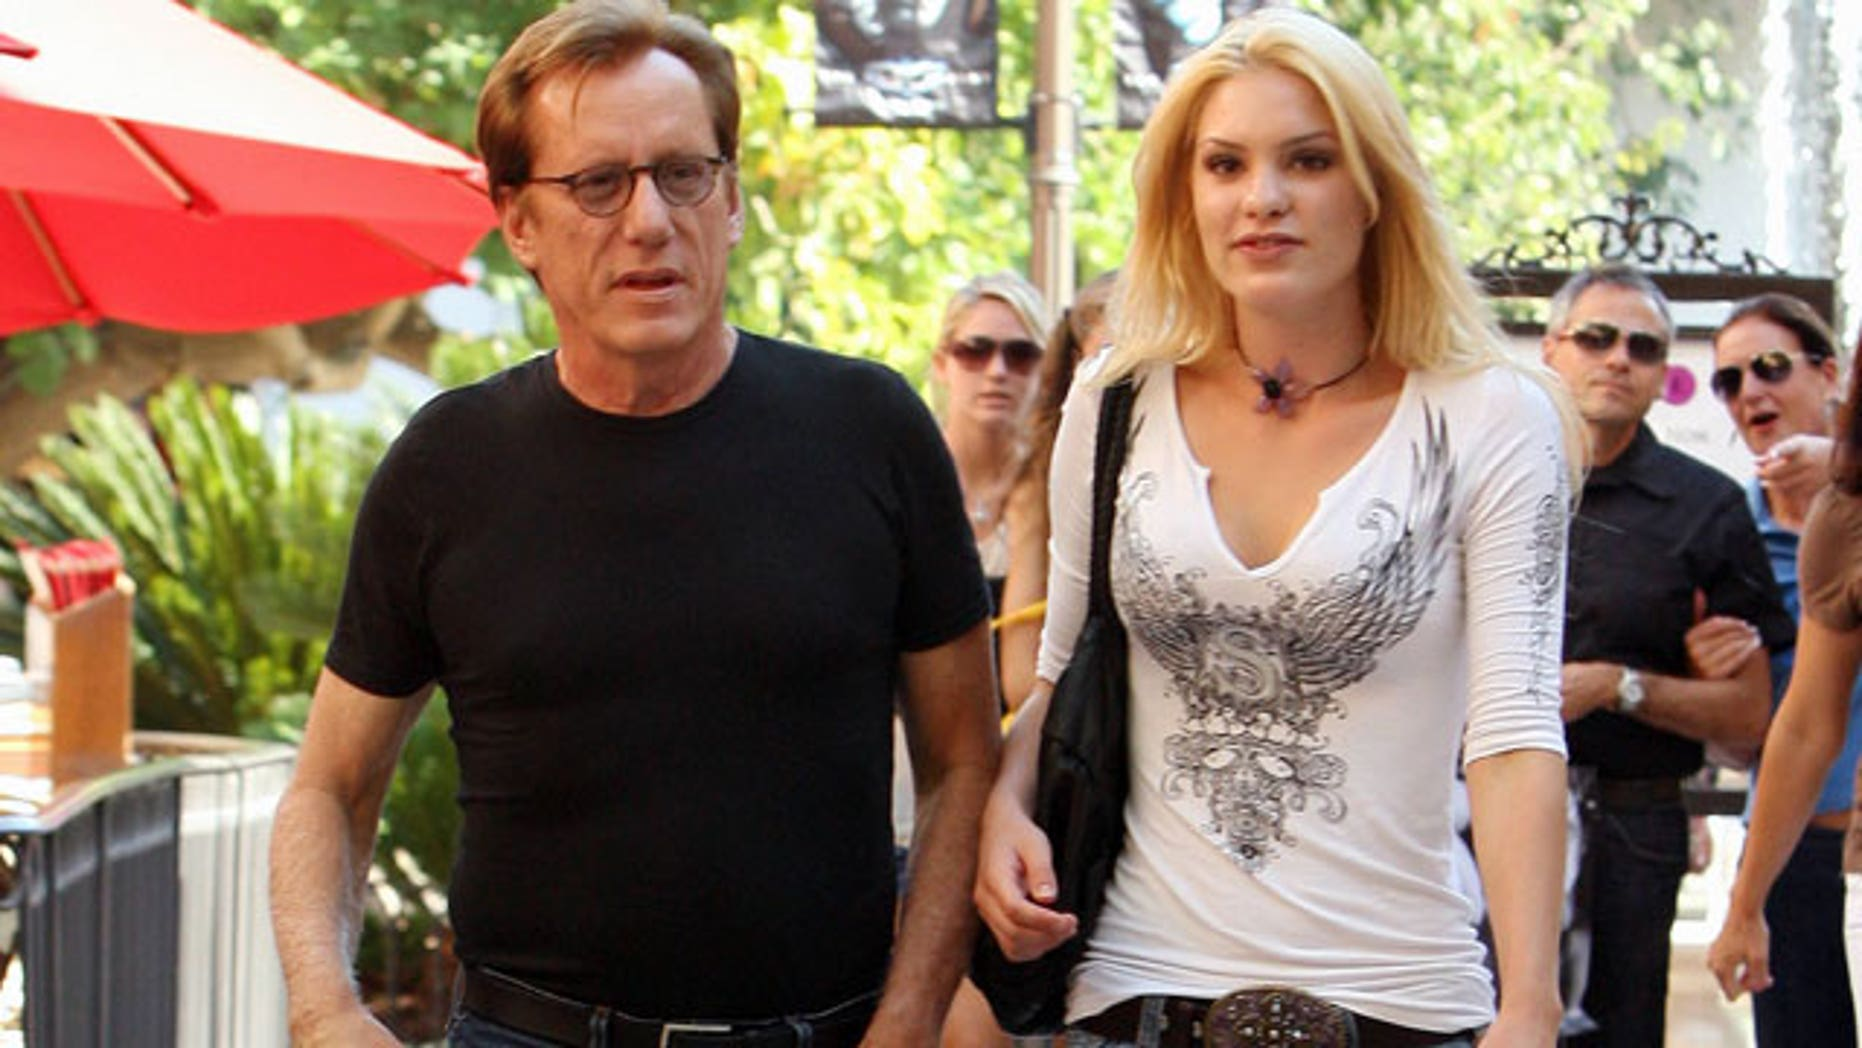 Actor James Woods, seen with Ashley Madison Myrick